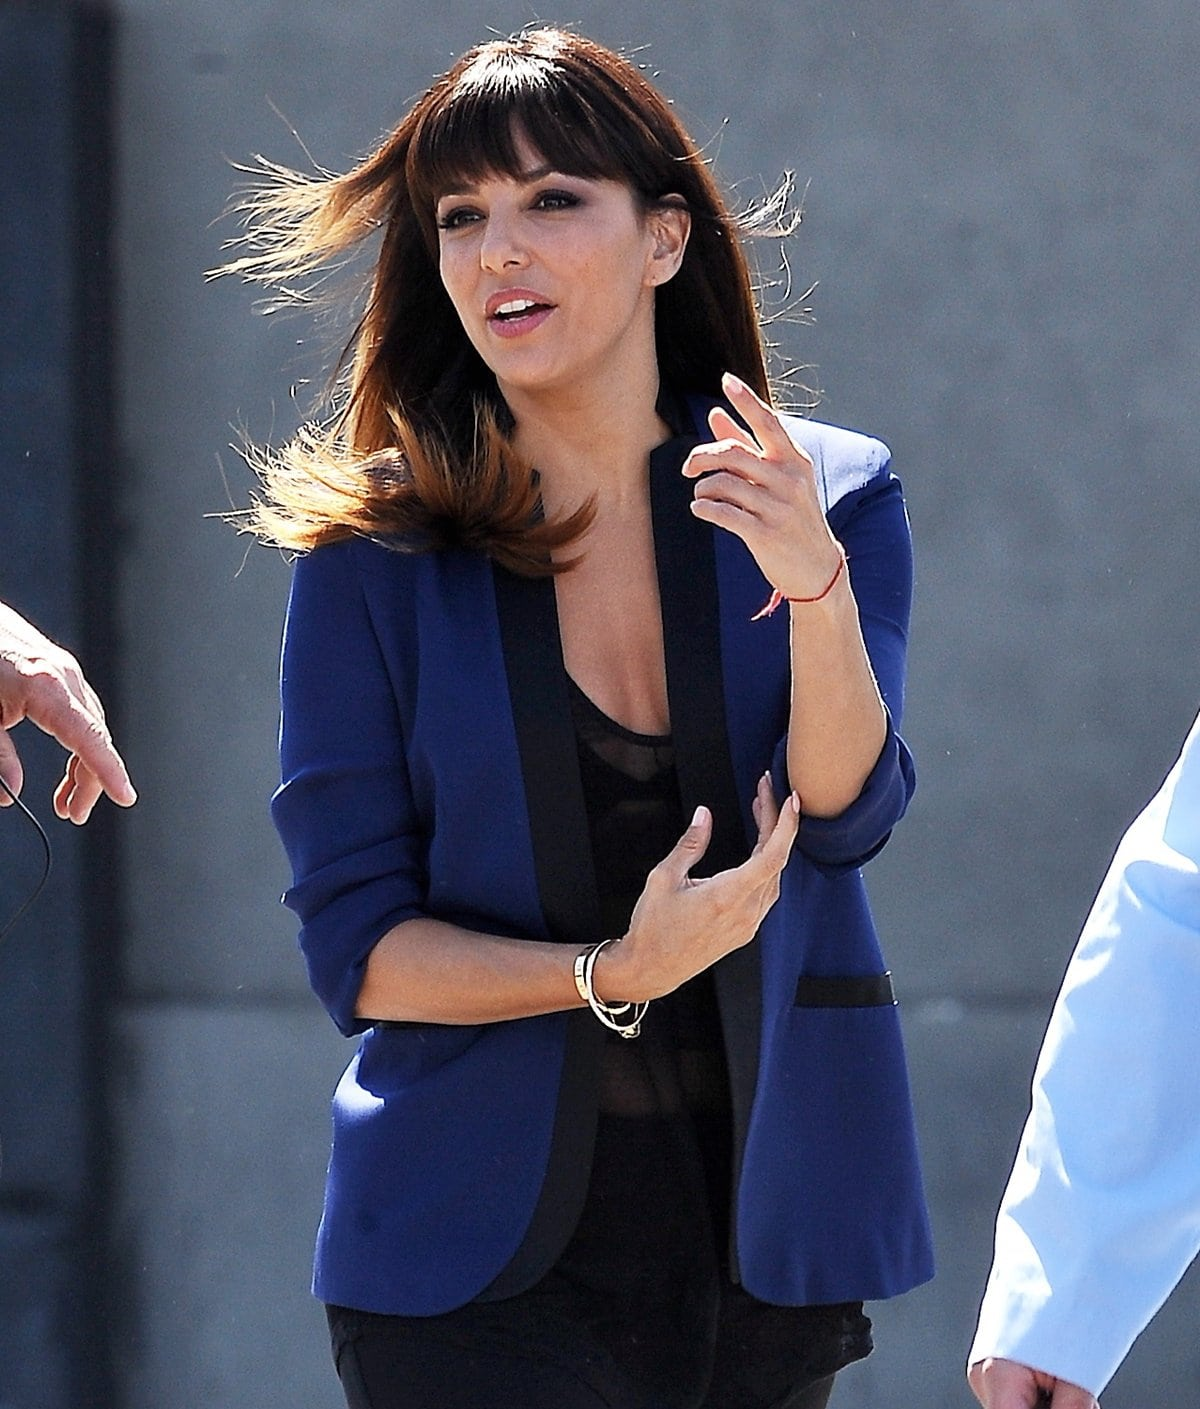 Eva Longoria with new bangs filming 'Visions' in downtown Los Angeles